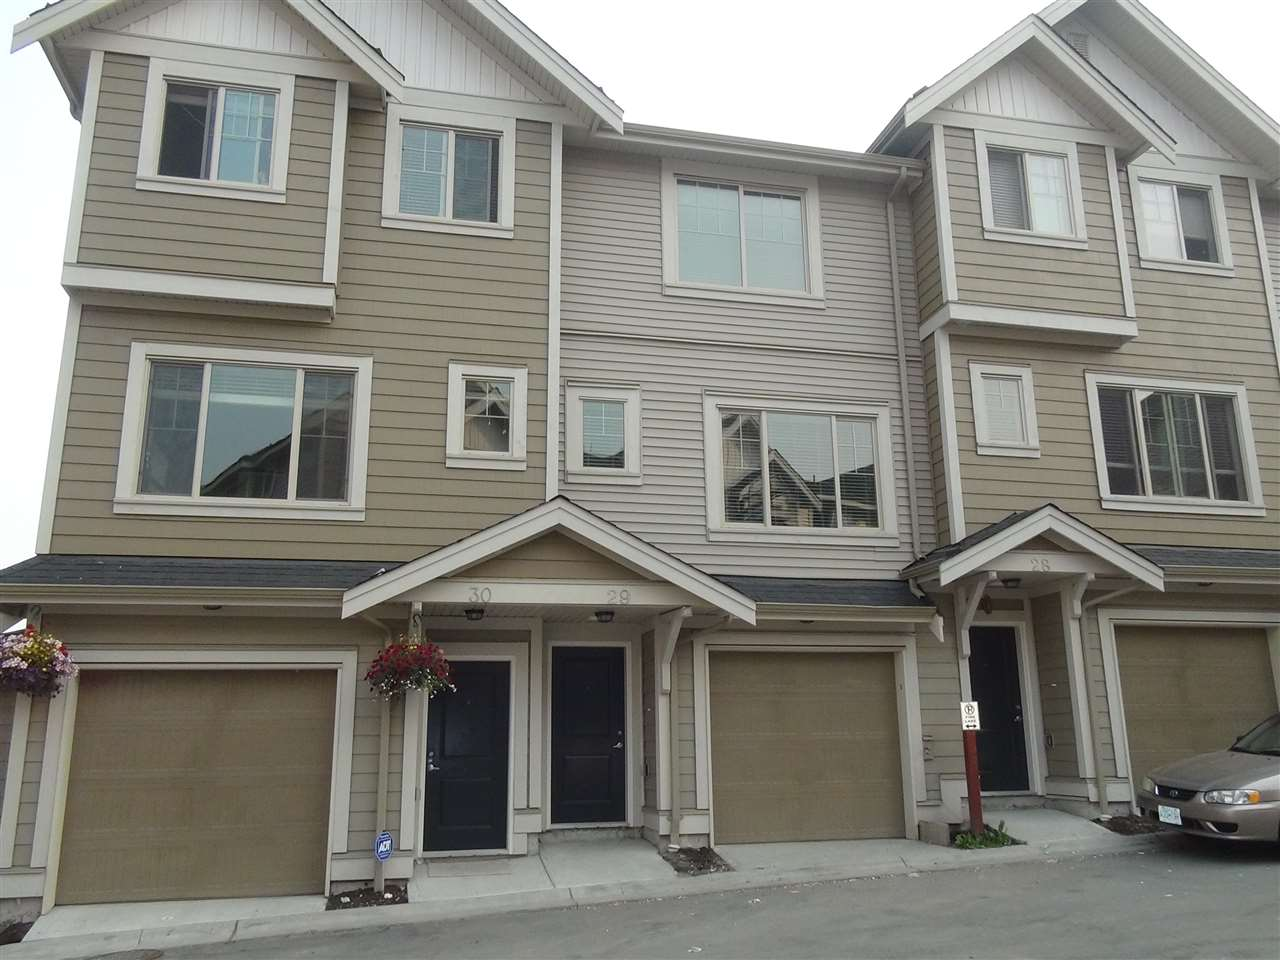 2017 built brand new 3 bedroom + 3 washroom Townhouse in the heart of Surrey.  GST included in price.  High end finish and appliances - gourmet kitchen with quartz countertops and luxury cabinets, Crown Moulding at all levels.  Large Master Bedroom with spa like bathroom.  Don't wait too long. Property on hold until further notice.